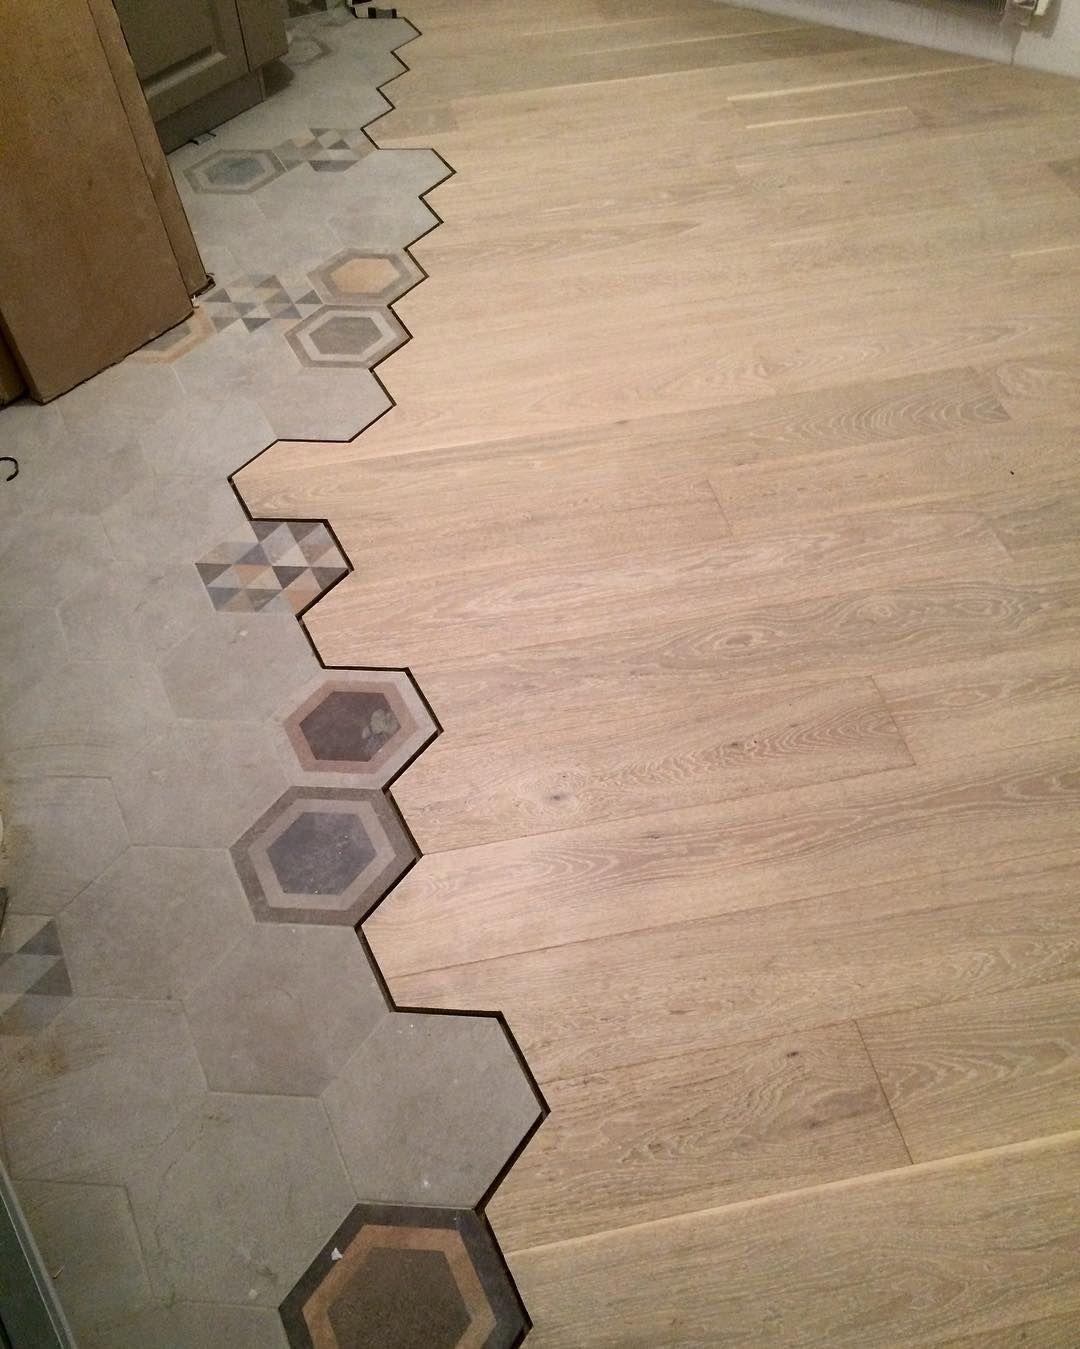 19 Flooring Transitions From Wood To Tile Idee Salle De Bain